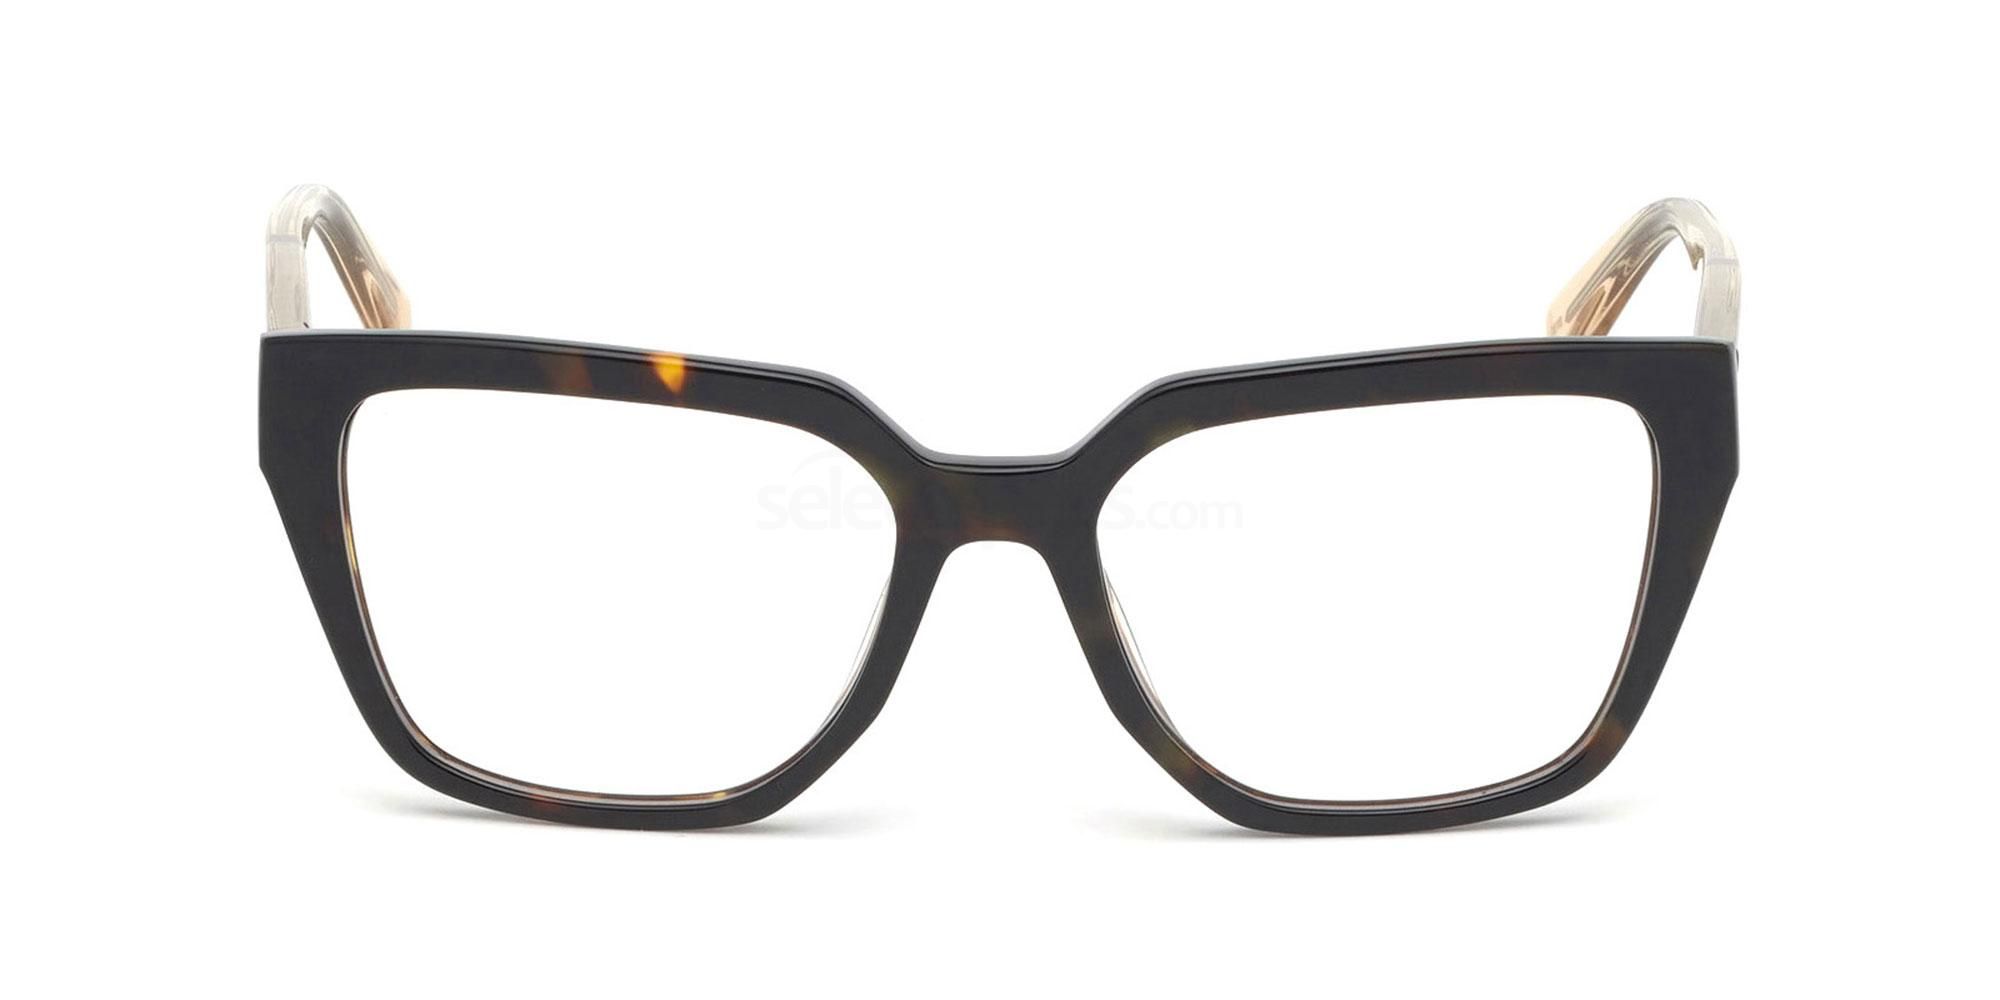 052 GM0341 Glasses, Guess by Marciano